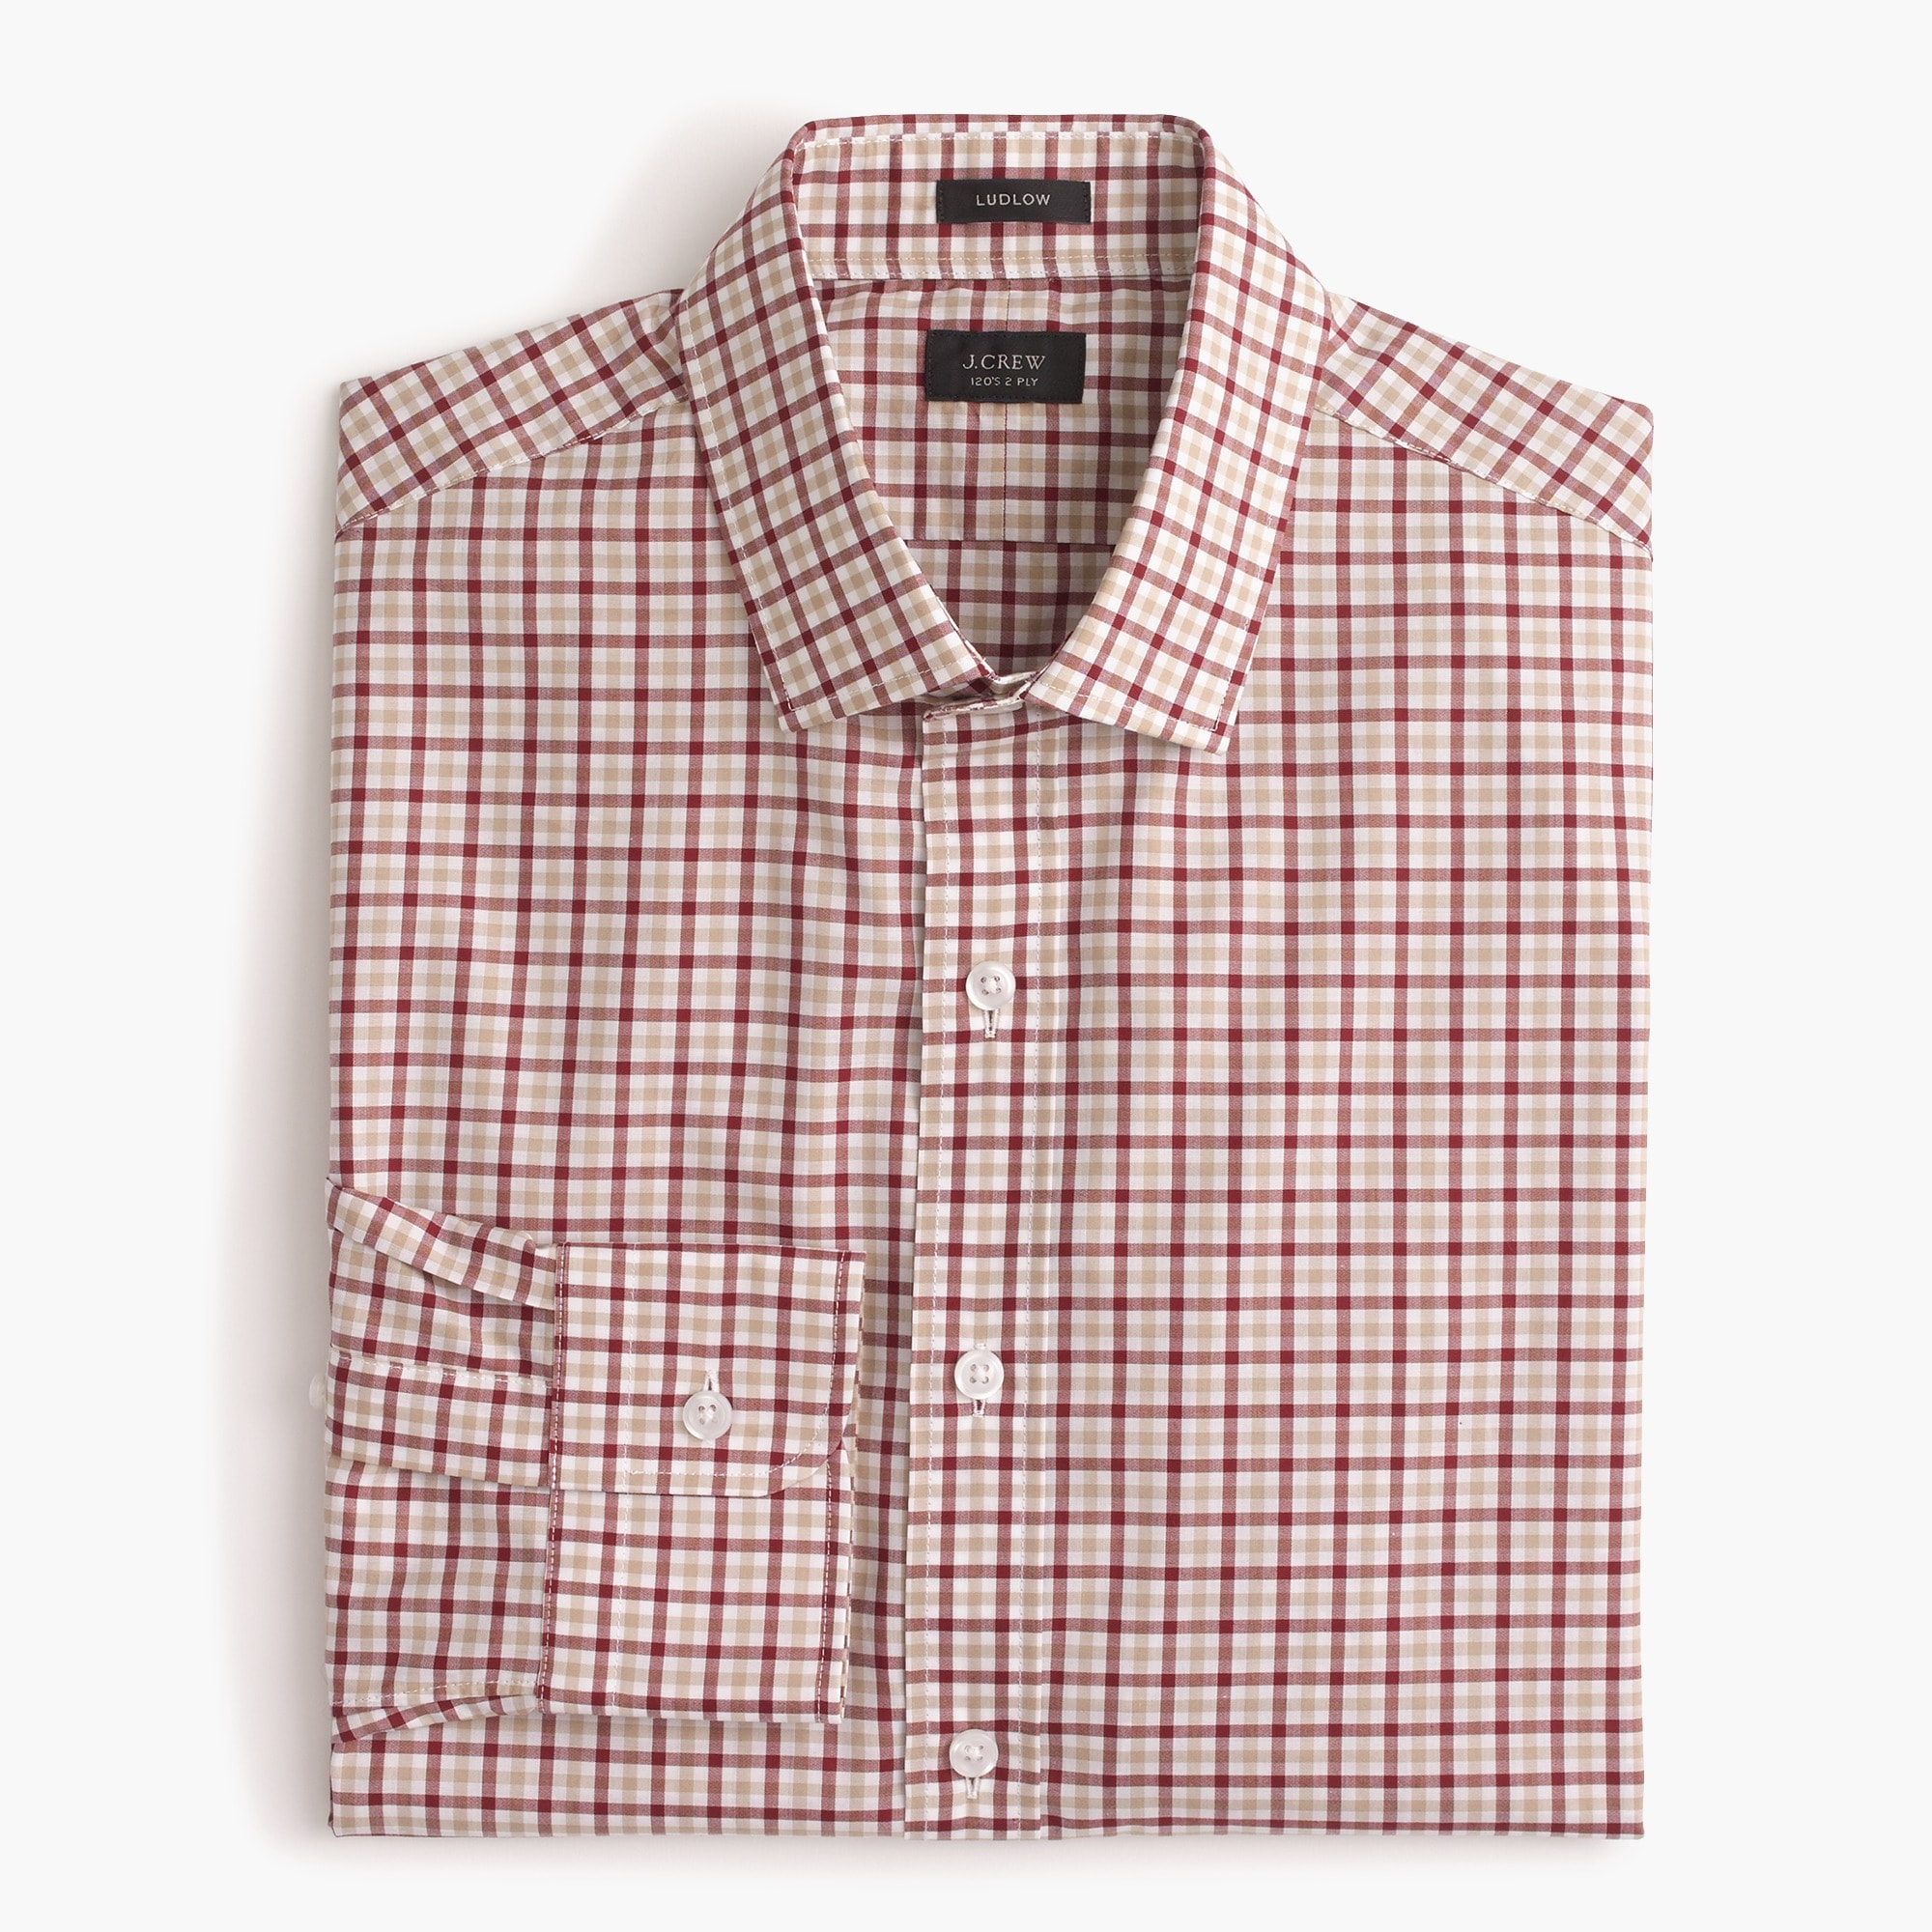 Ludlow shirt in small tattersall